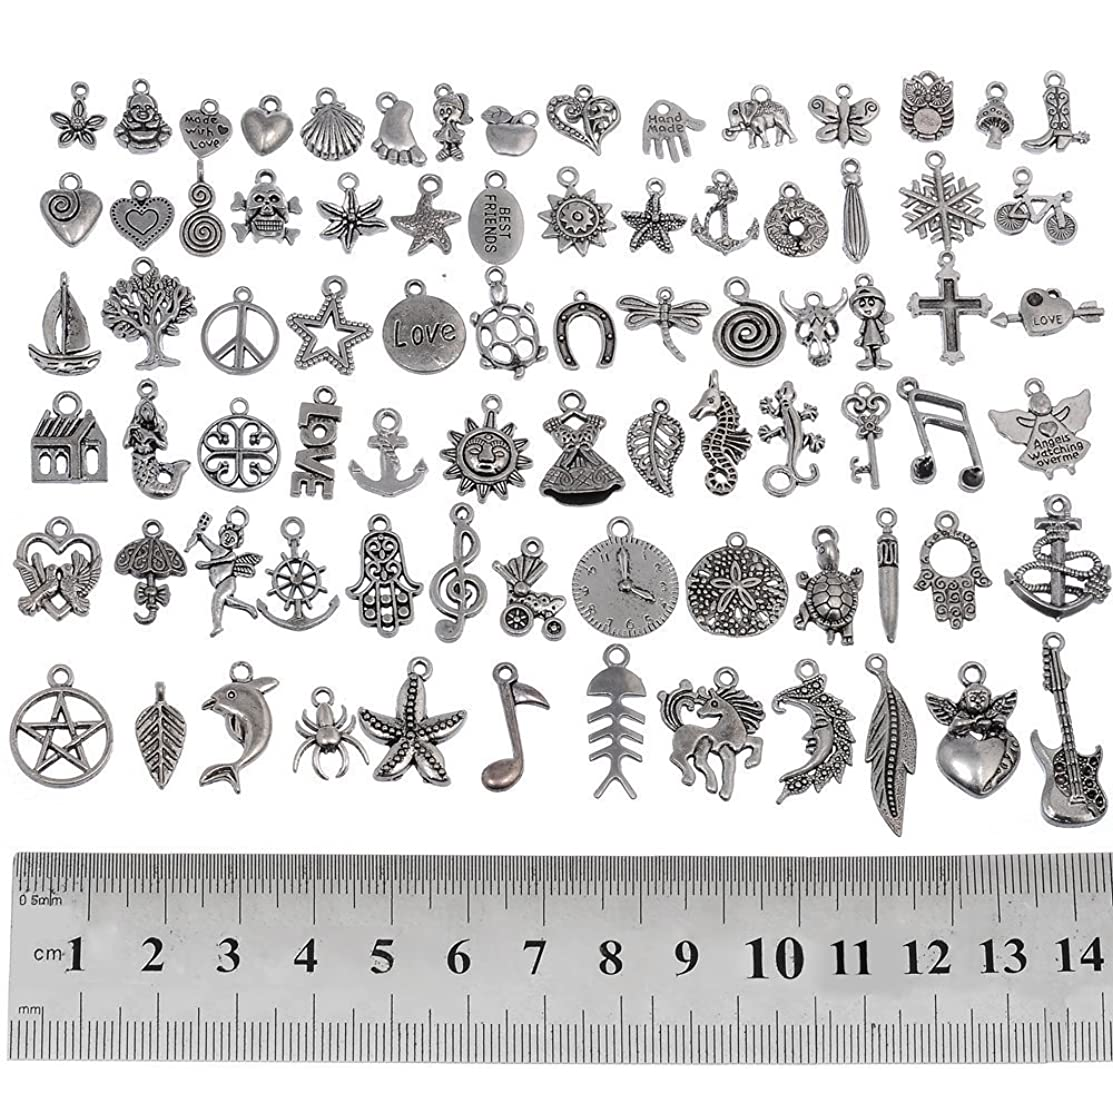 RUBYCA 160Pcs Assorted Mixed Silver Charms Pendants for Bracelets Jewelry Making Crafting Supplies, Tibetan Silver Color Charms, Just Like the Picture (Mix5)